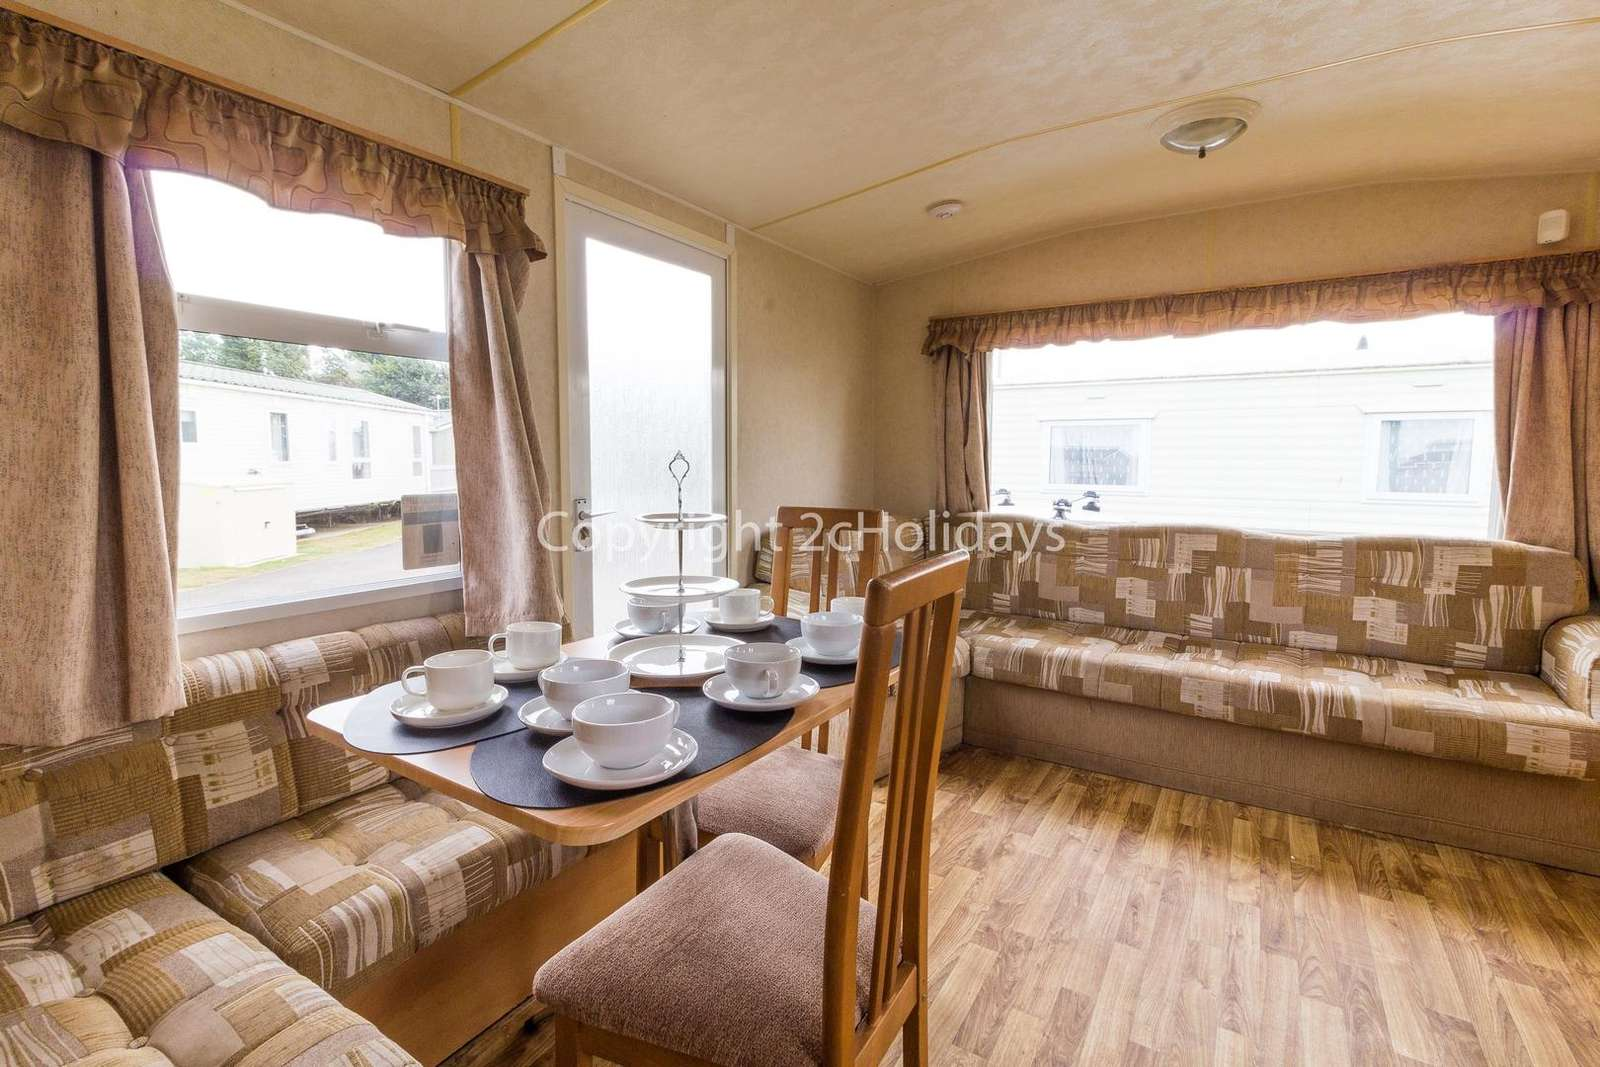 Open plan kitchen/lounge, ideal for families!